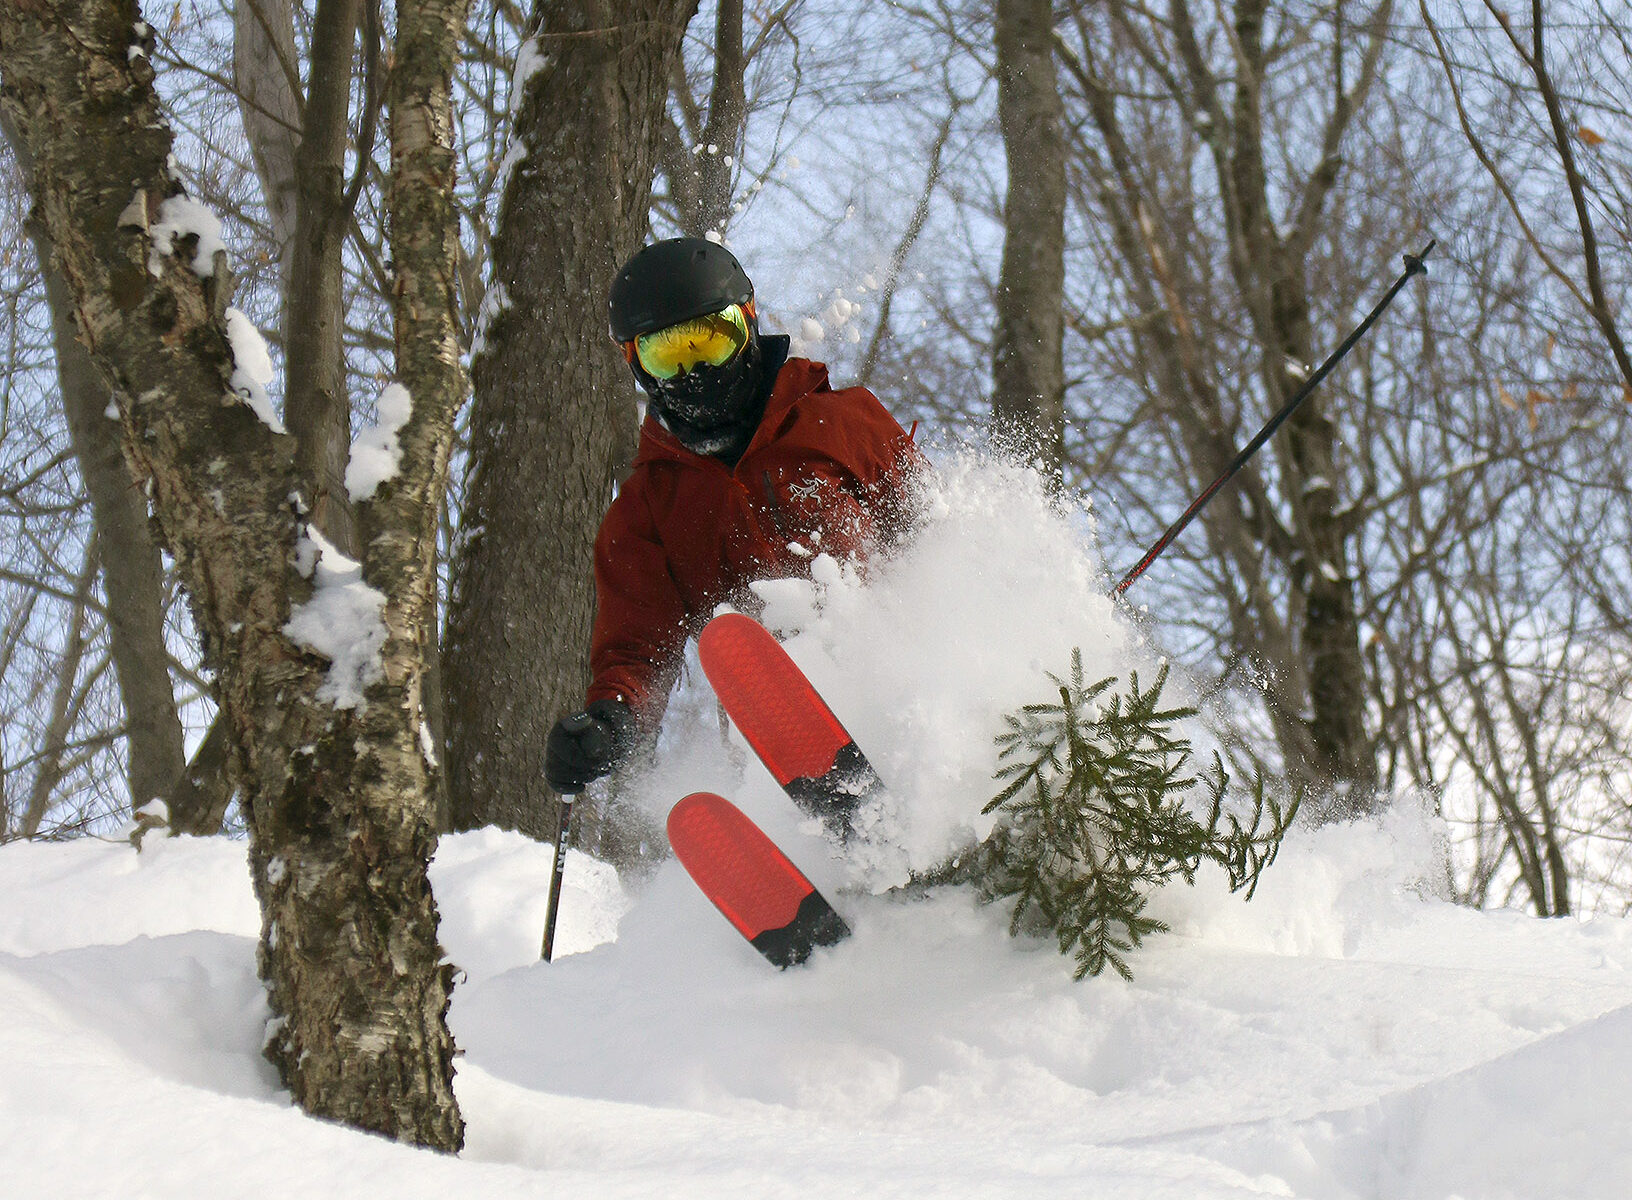 Dylan skiing powder by a small evergreen tree in the Doug's Solitude area of Bolton Valley Resort in Vermont